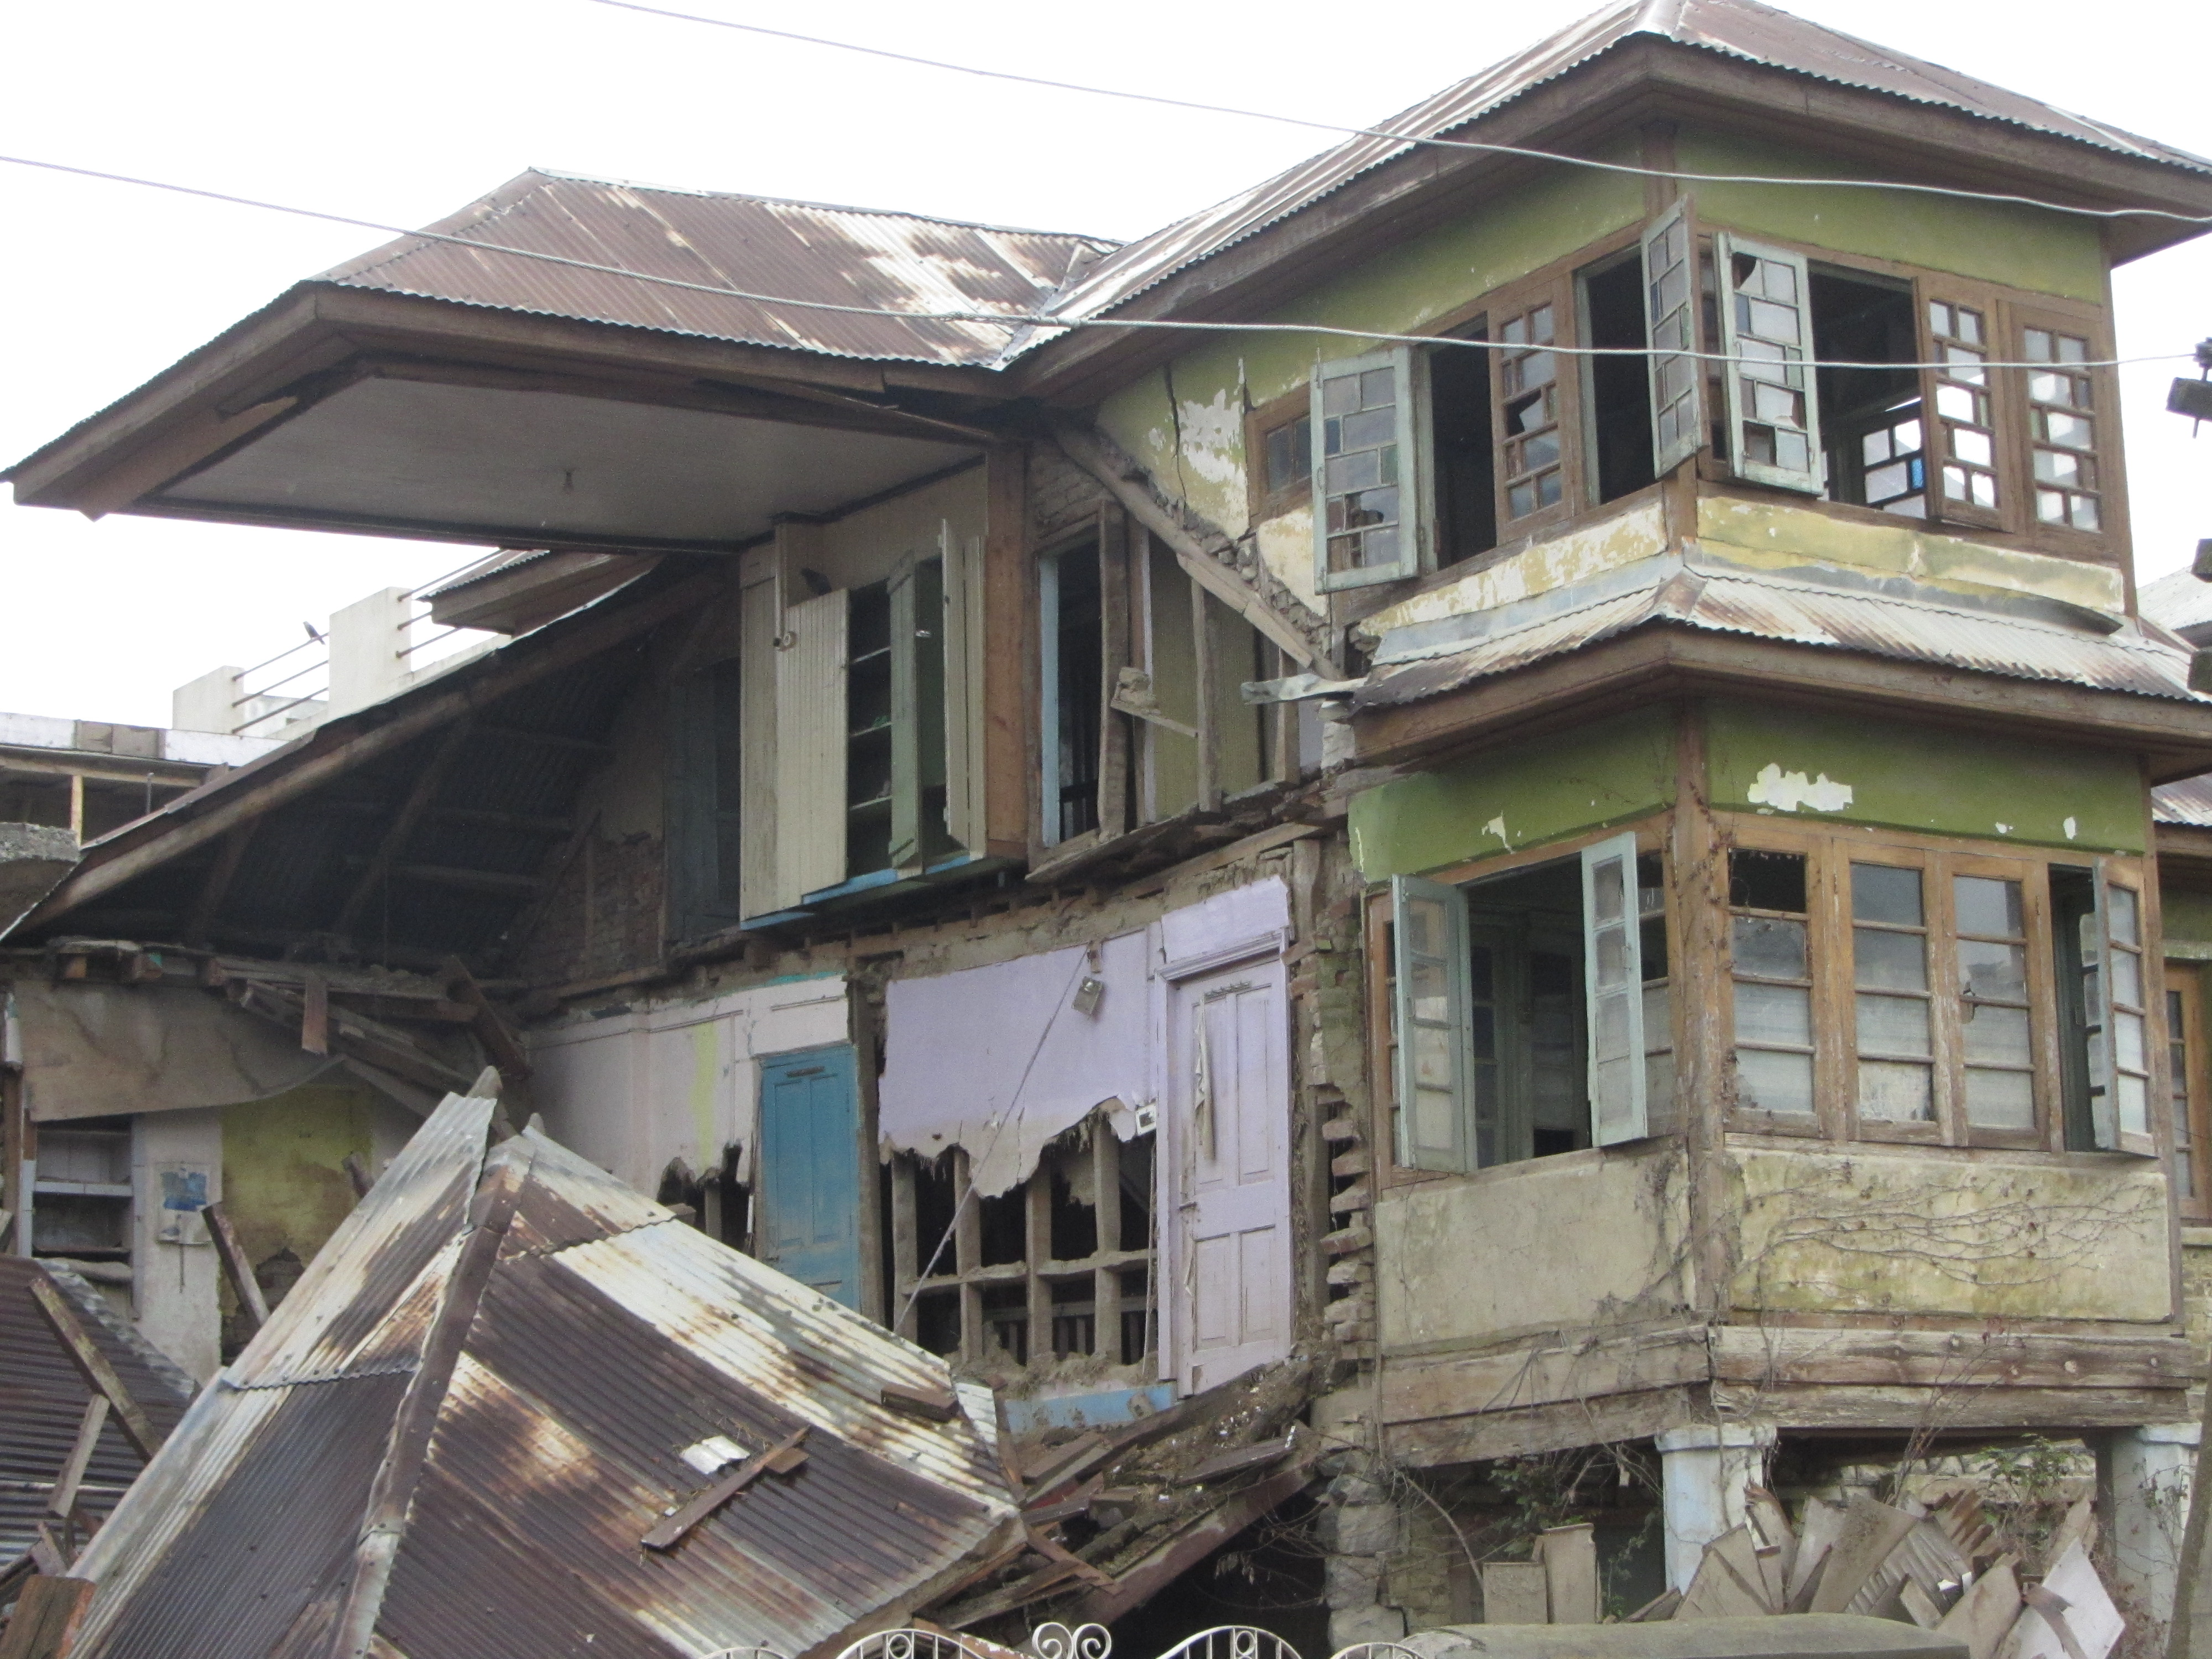 A devastated house  in Srinagar stands in dilapidated condition six months after it remained underwater for over a month in September 2014 Kashmir floods.